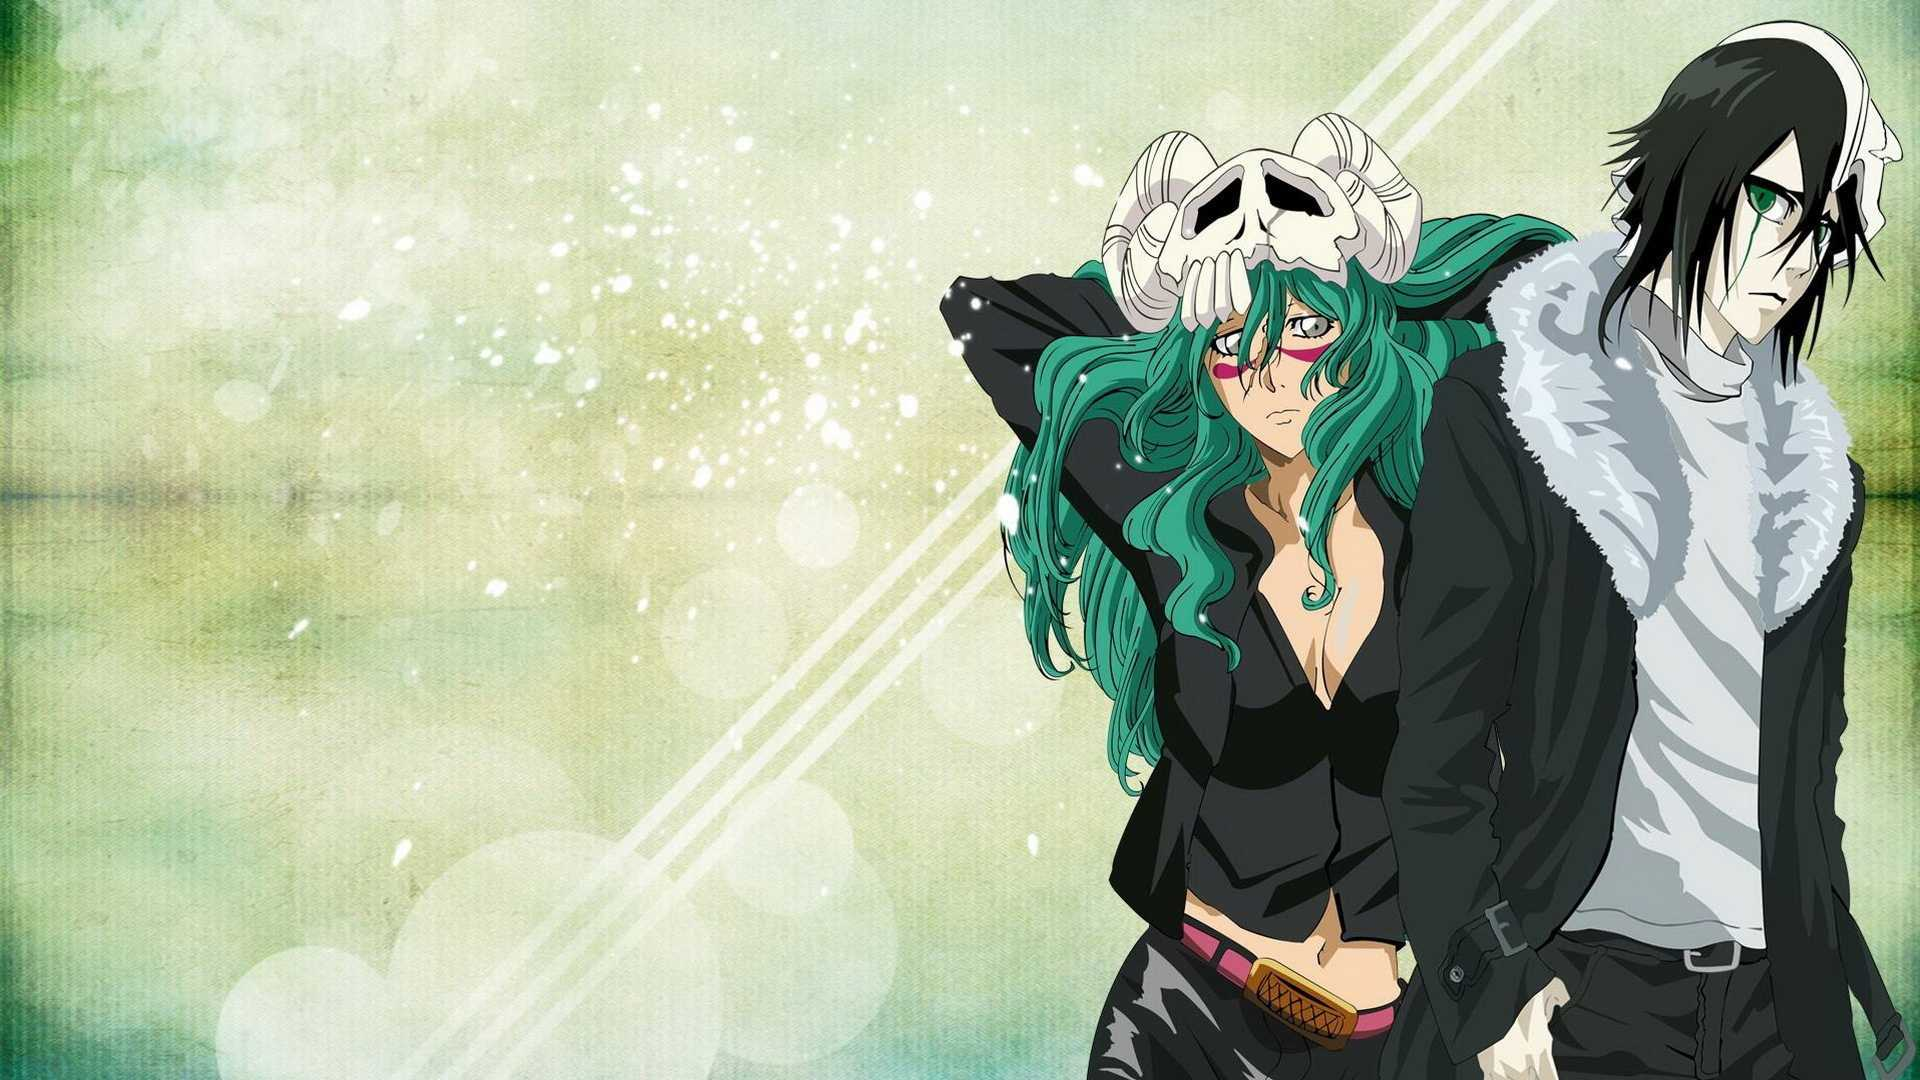 Anime Manga Bleach Image For Android Wallpaper